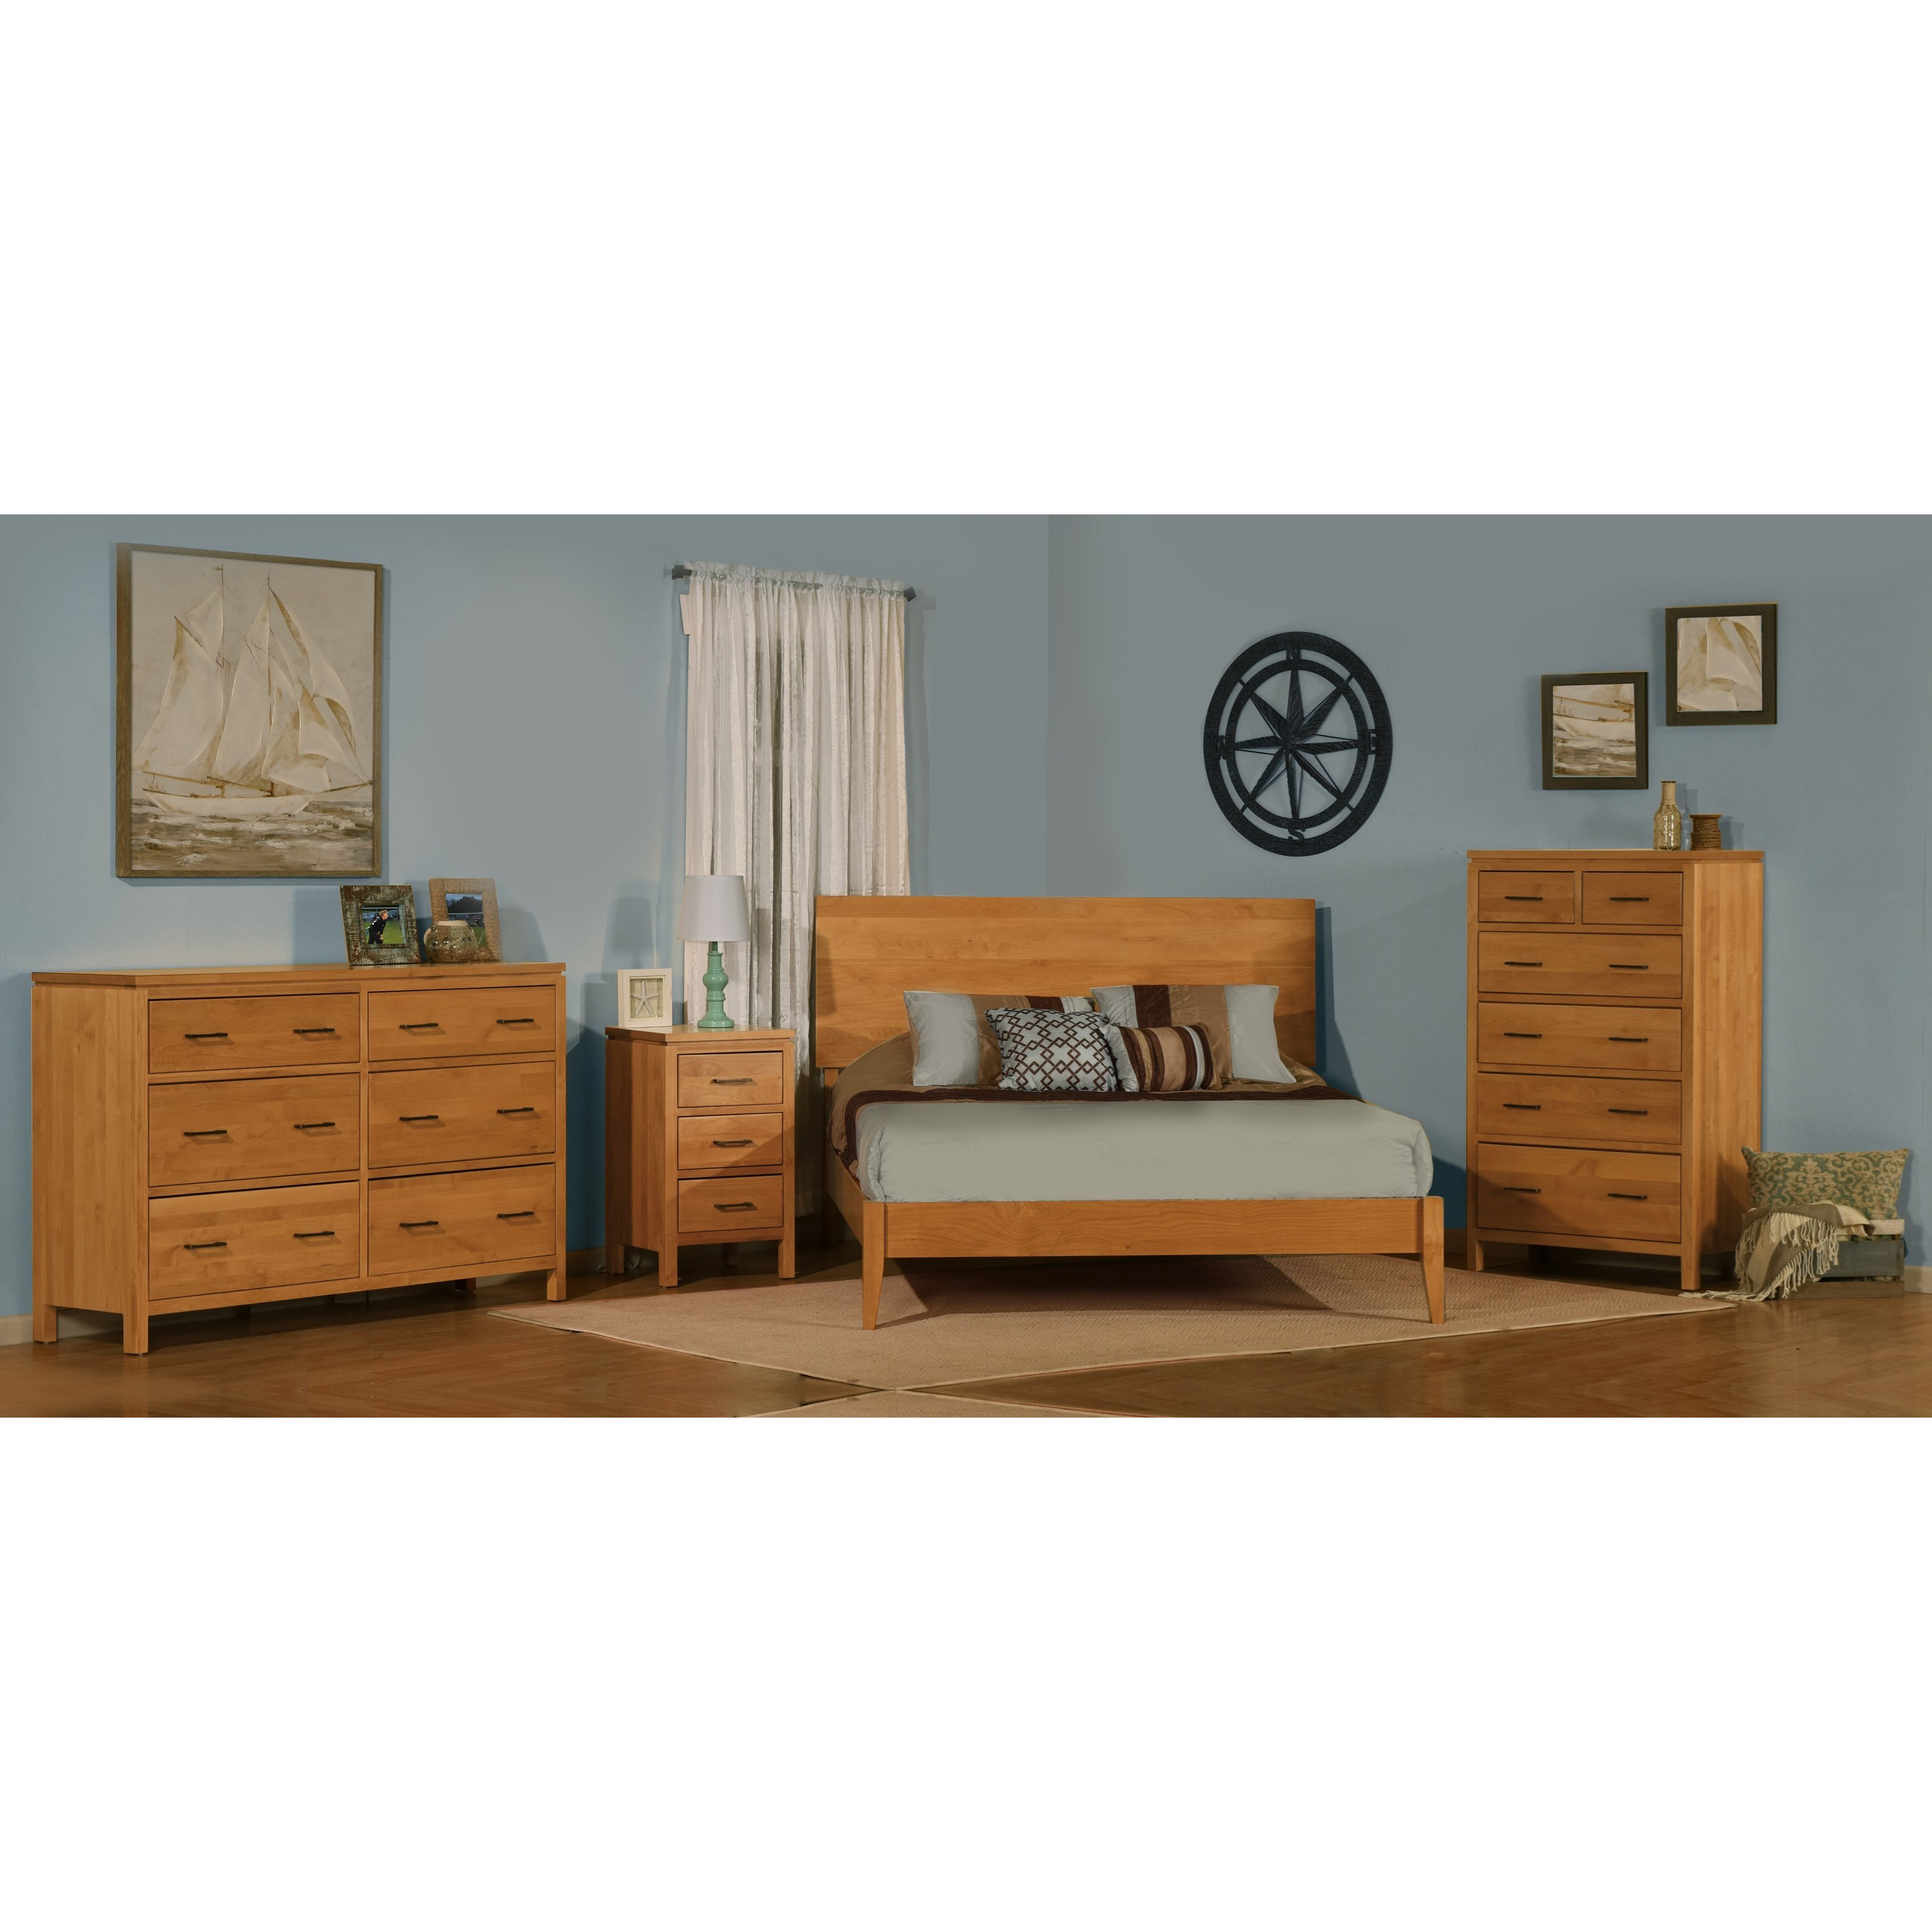 Bedroom Furniture Joplin Mo: Archbold Furniture 2 West 3 Drawer Night Stand With Oil